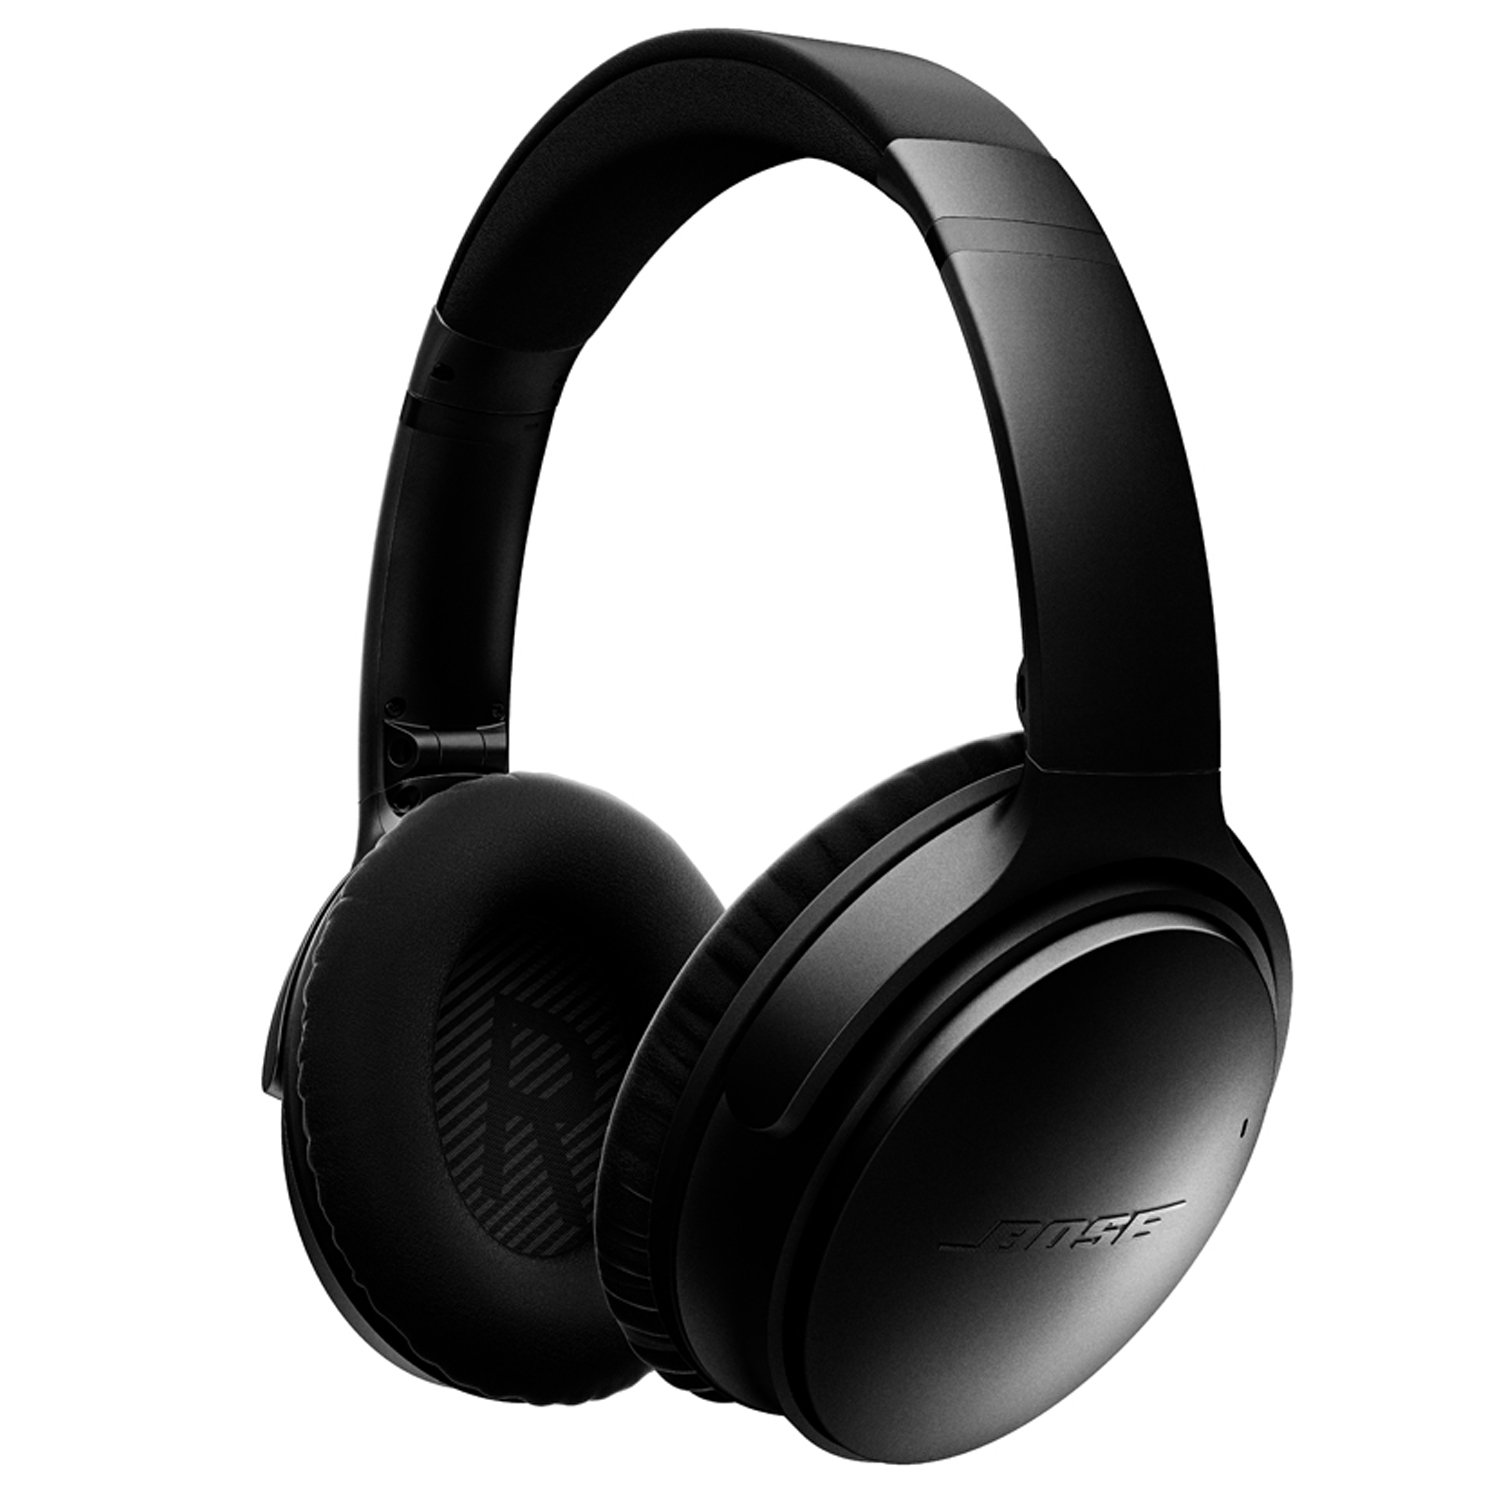 Bose QuietComfort 35 (Series I) Wireless Headphones, Noise Cancelling - Black by Bose